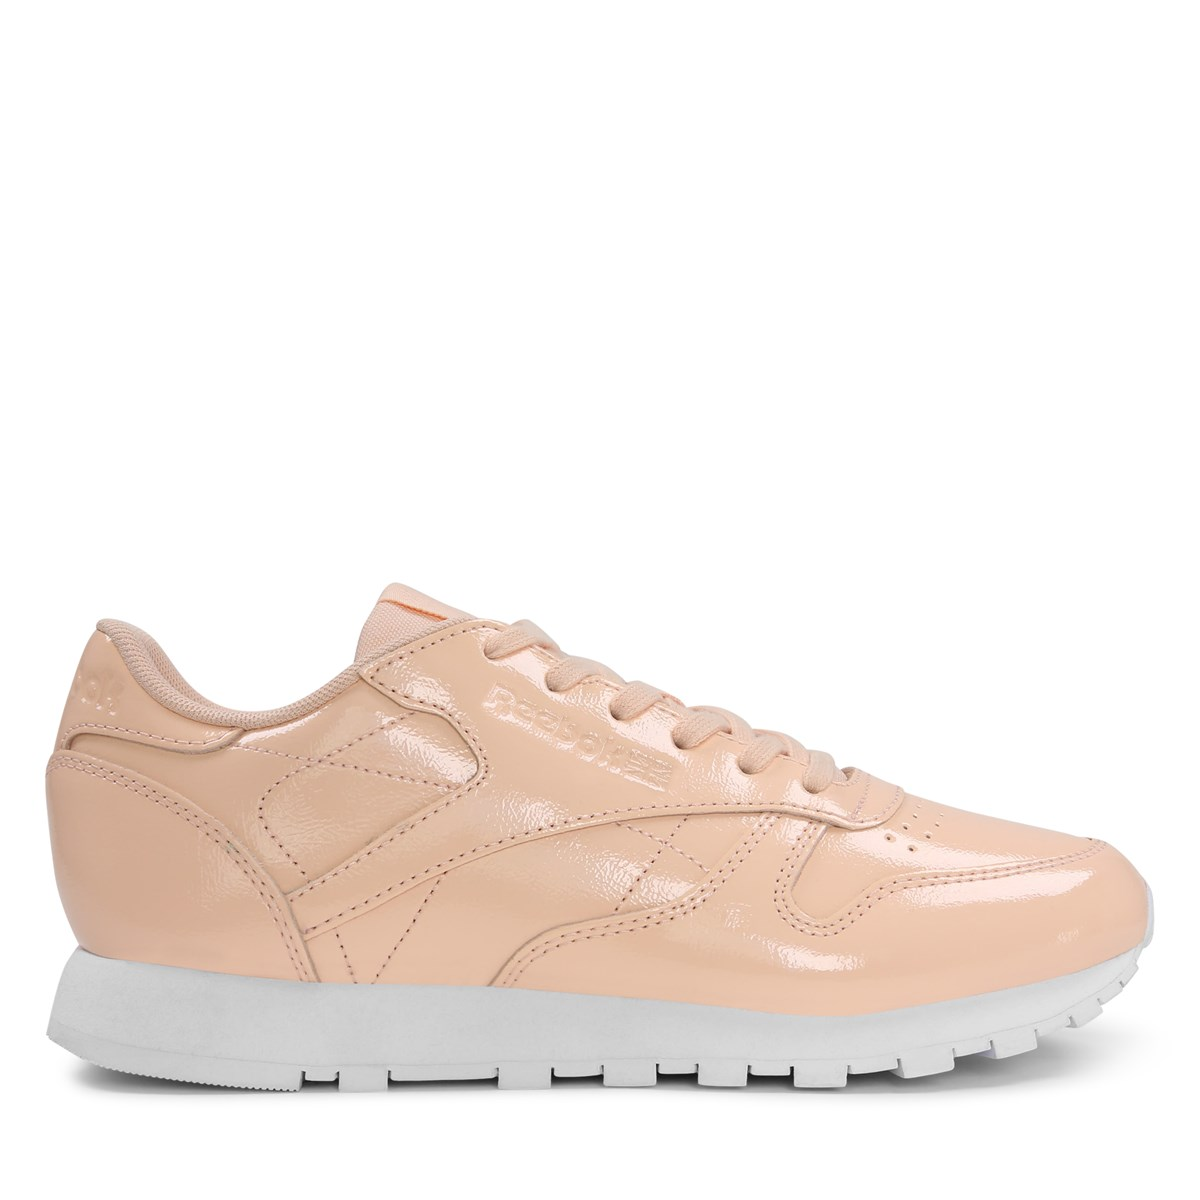 Women's Classic Leather Patent sneaker